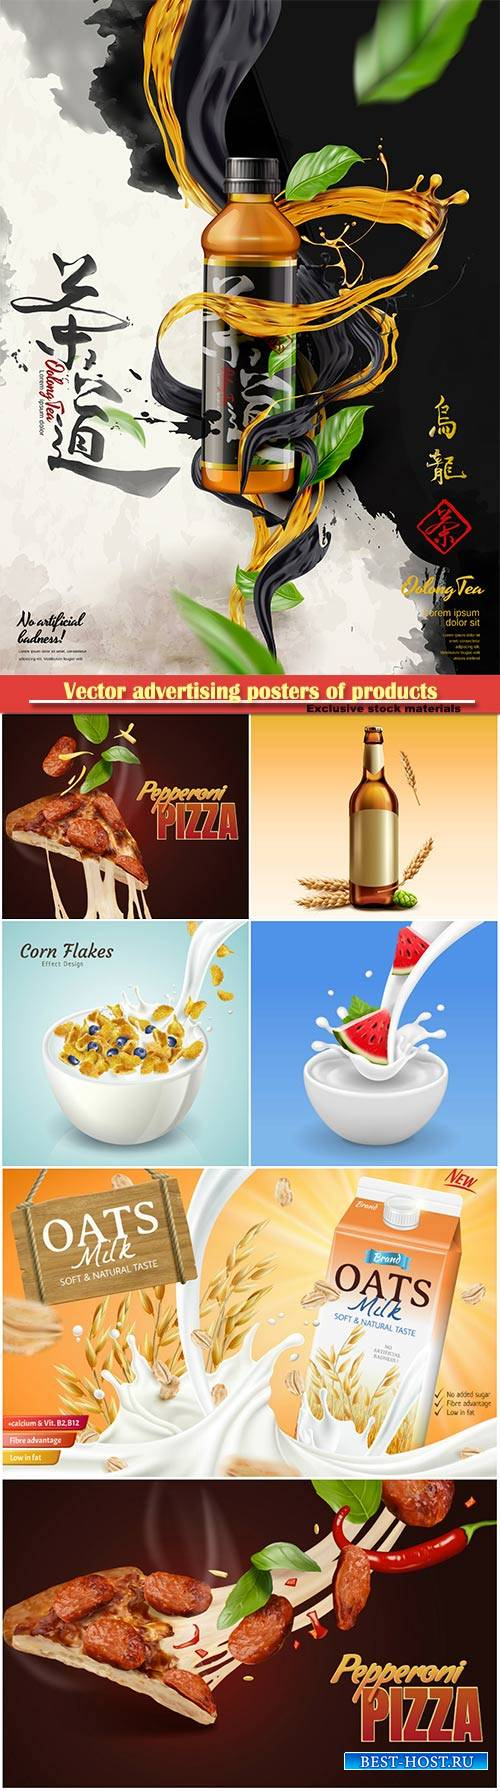 Vector advertising posters of various products